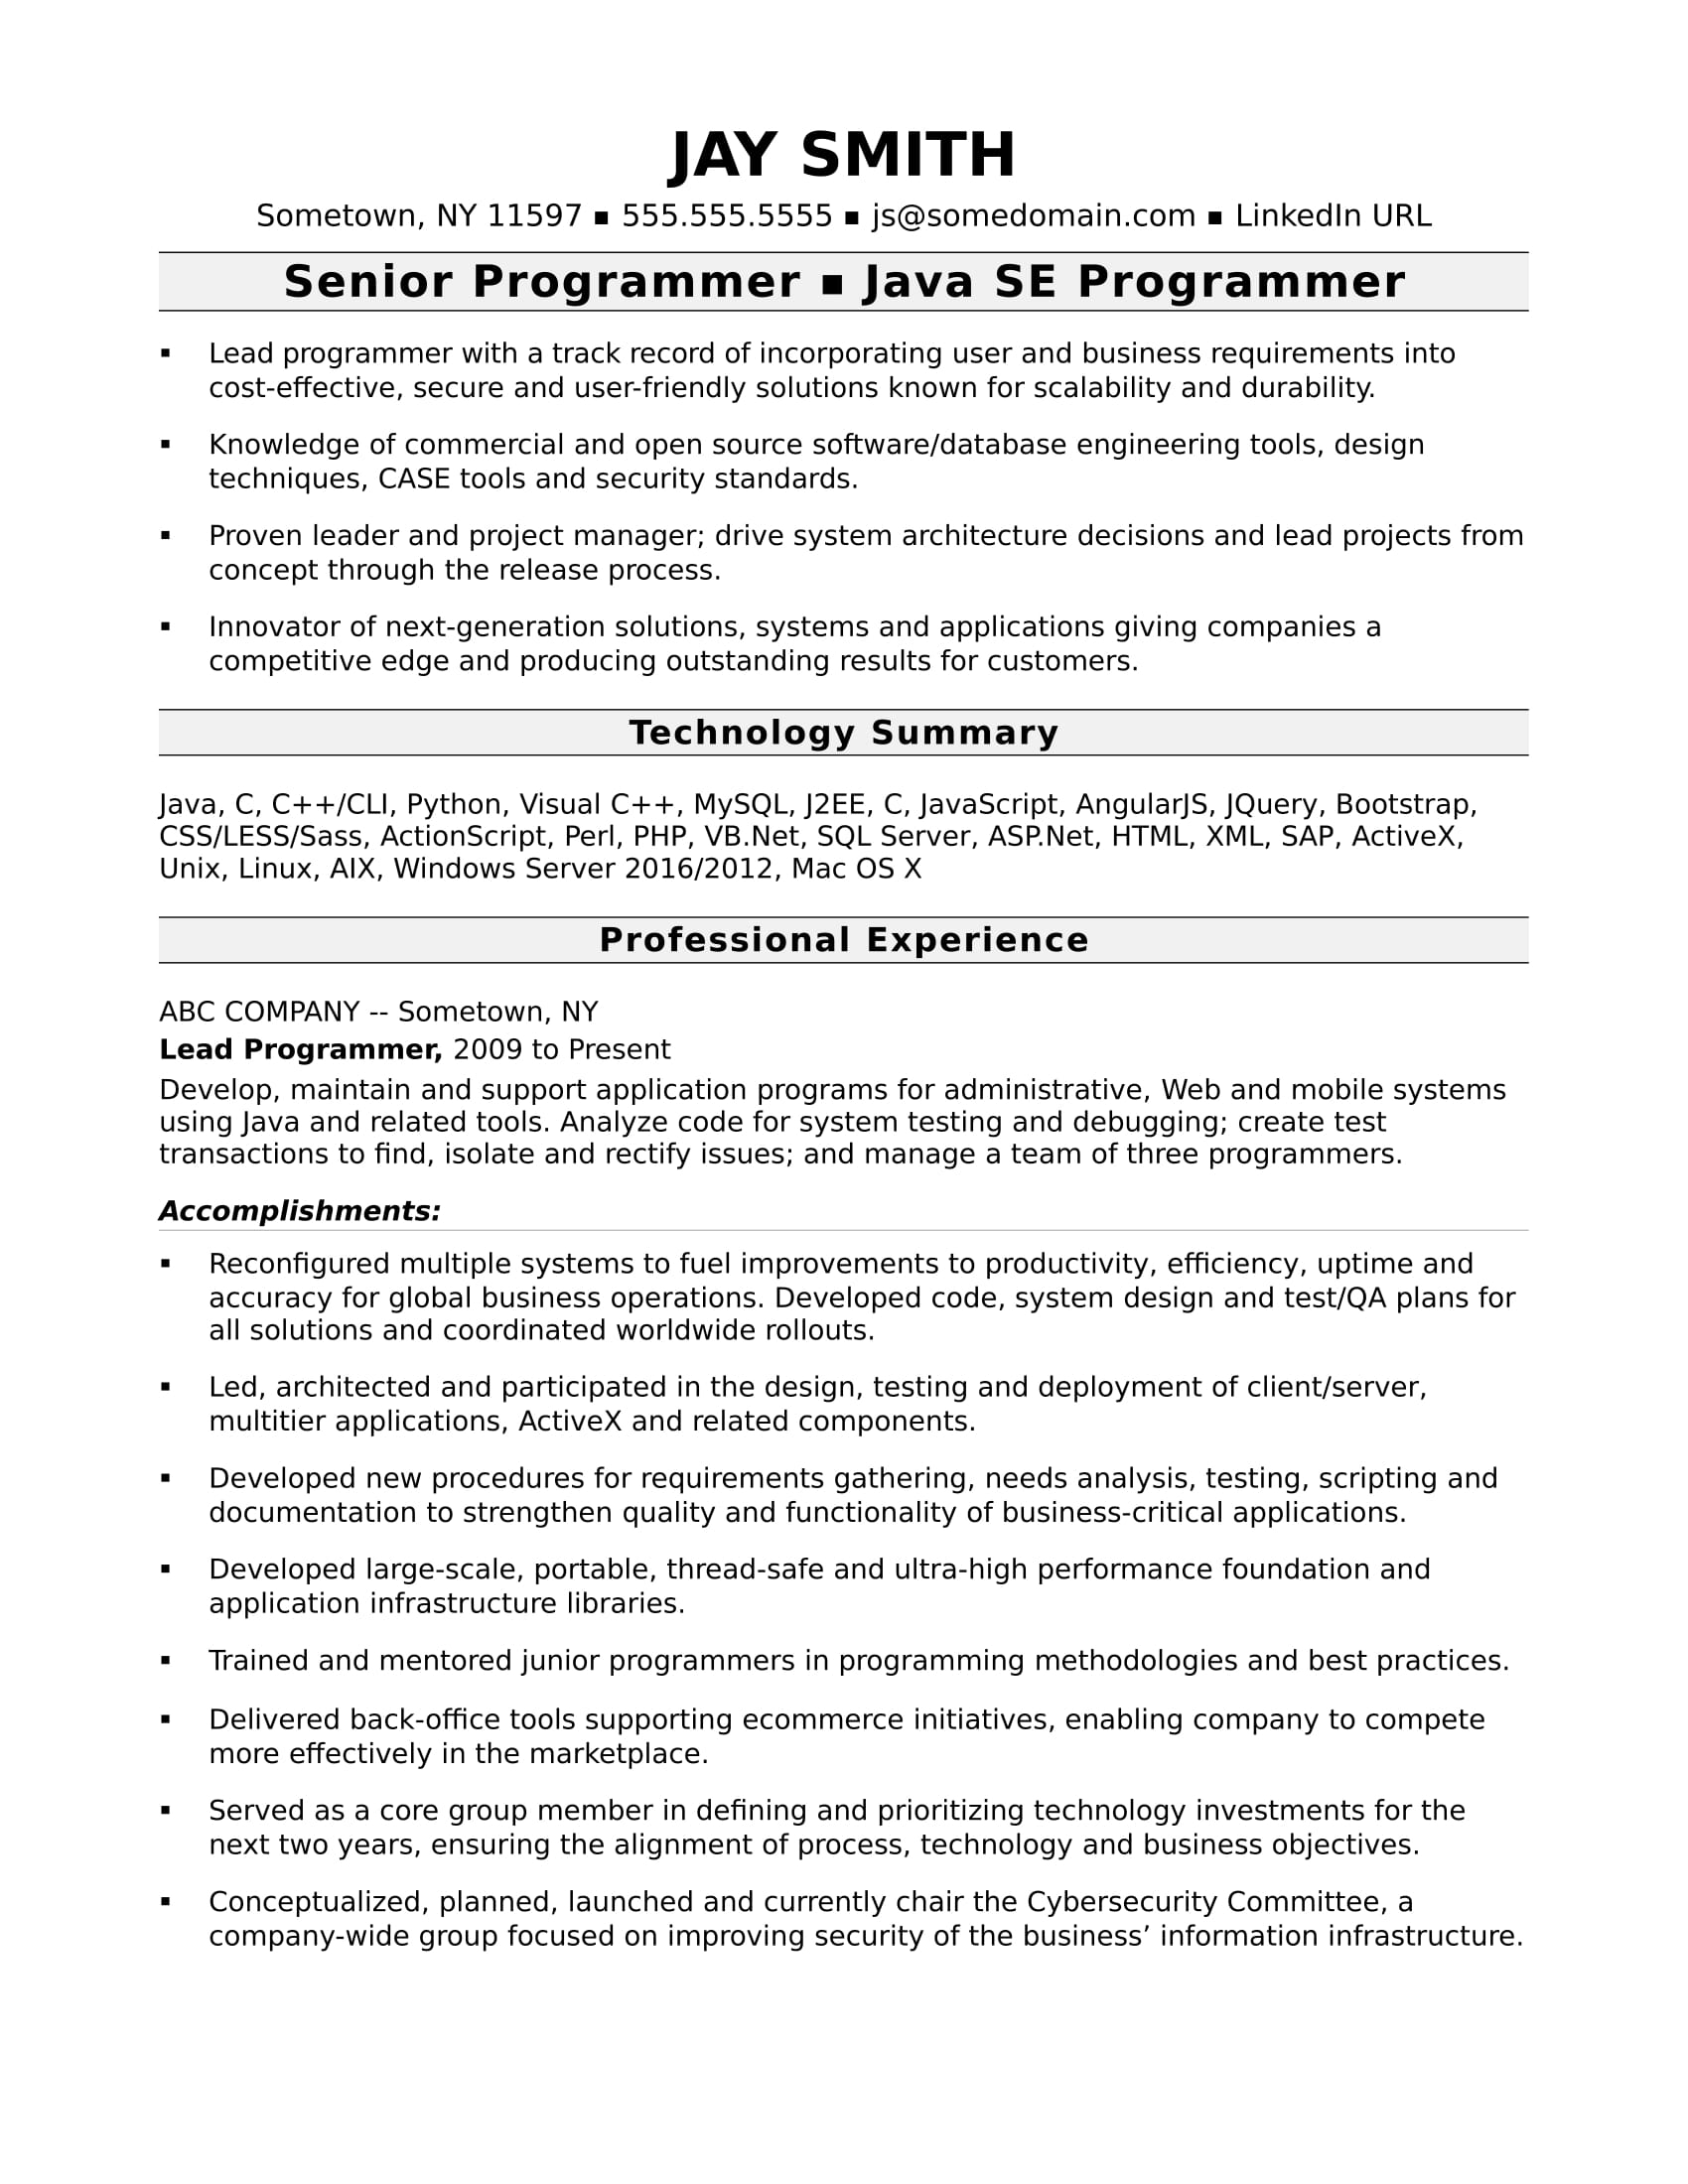 Sample resume for an experienced computer programmer monster sample resume for an experienced computer programmer yelopaper Image collections